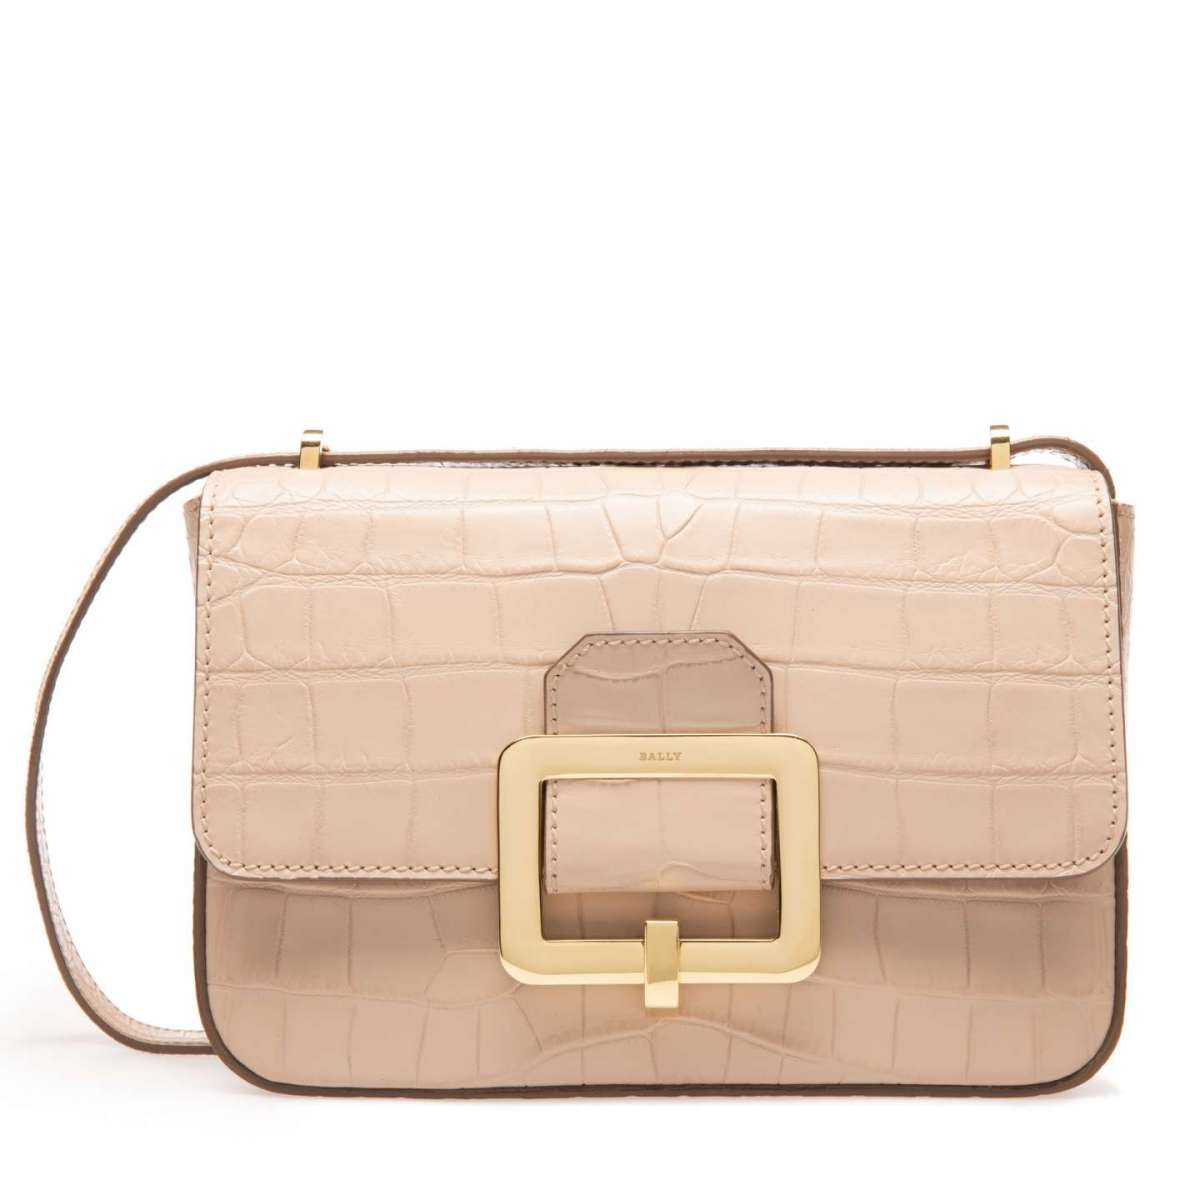 JANELLE Bag Bally